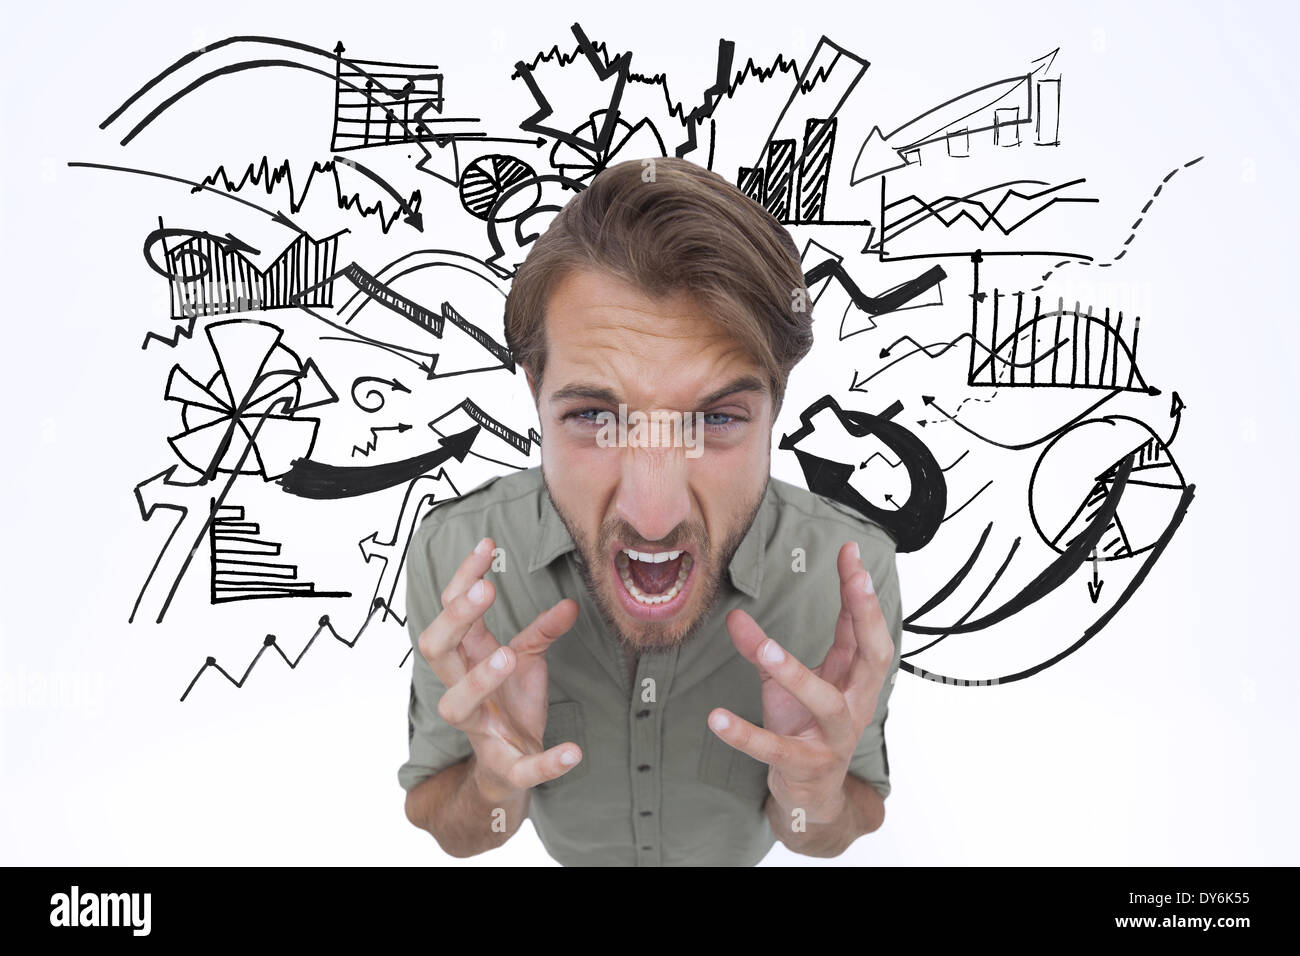 Composite image of angry man shouting - Stock Image